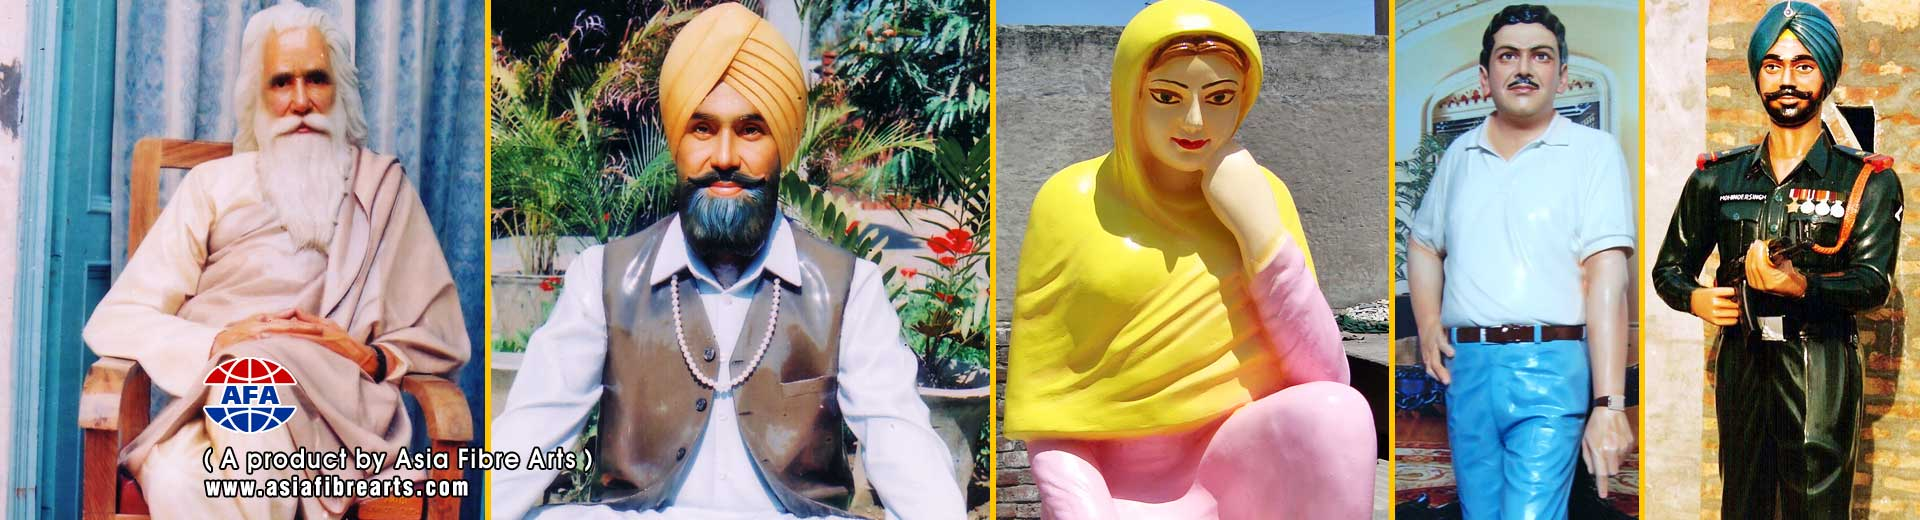 live statue sculpture living statue sculpture manufacturers exporters in india punjab amritsar